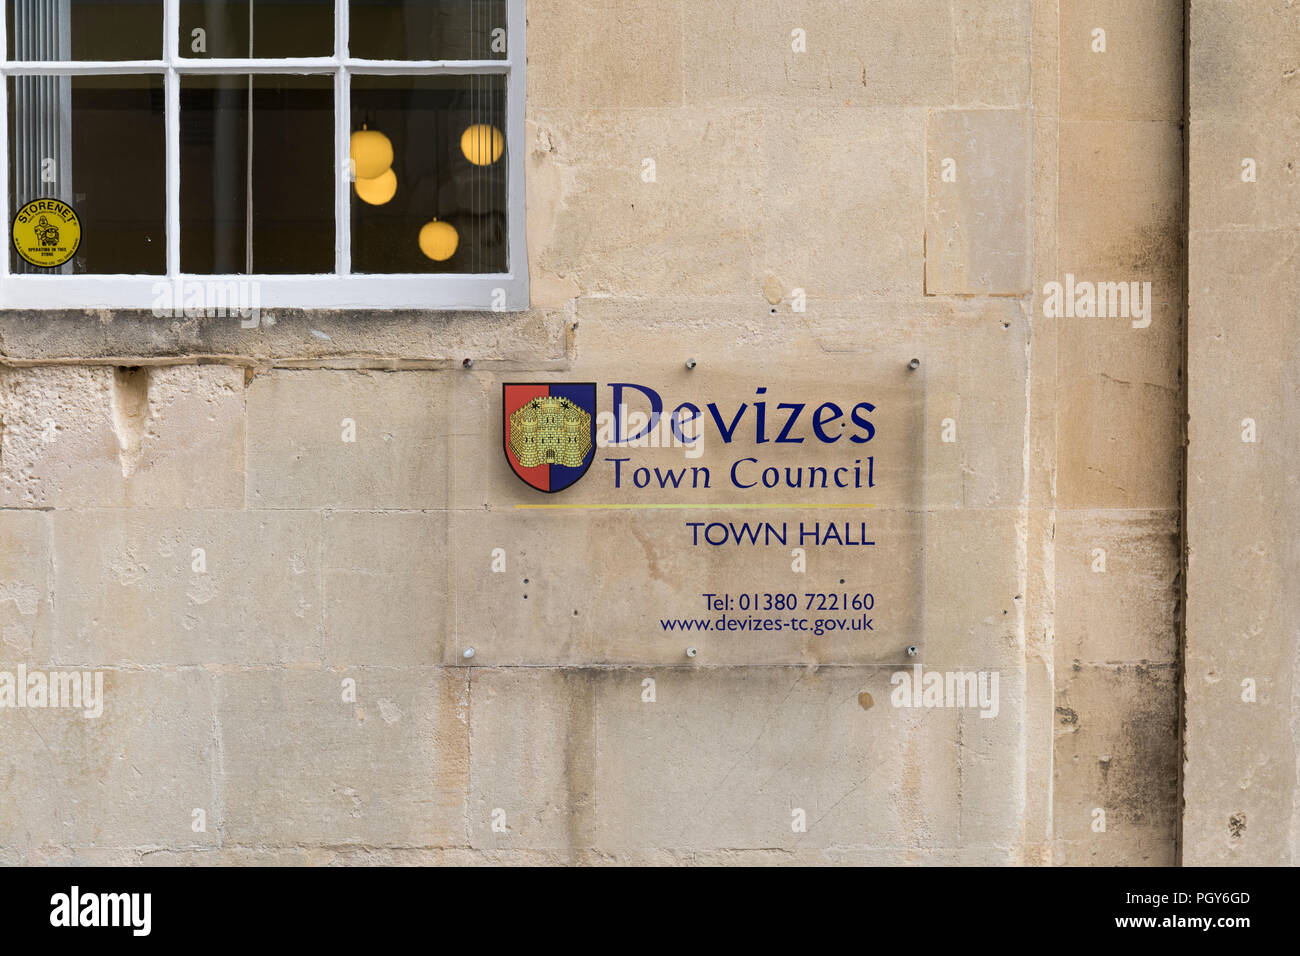 Devizes Town Council, Town Hall, St.John's Street, Devizes, Wiltshire, UK - Stock Image